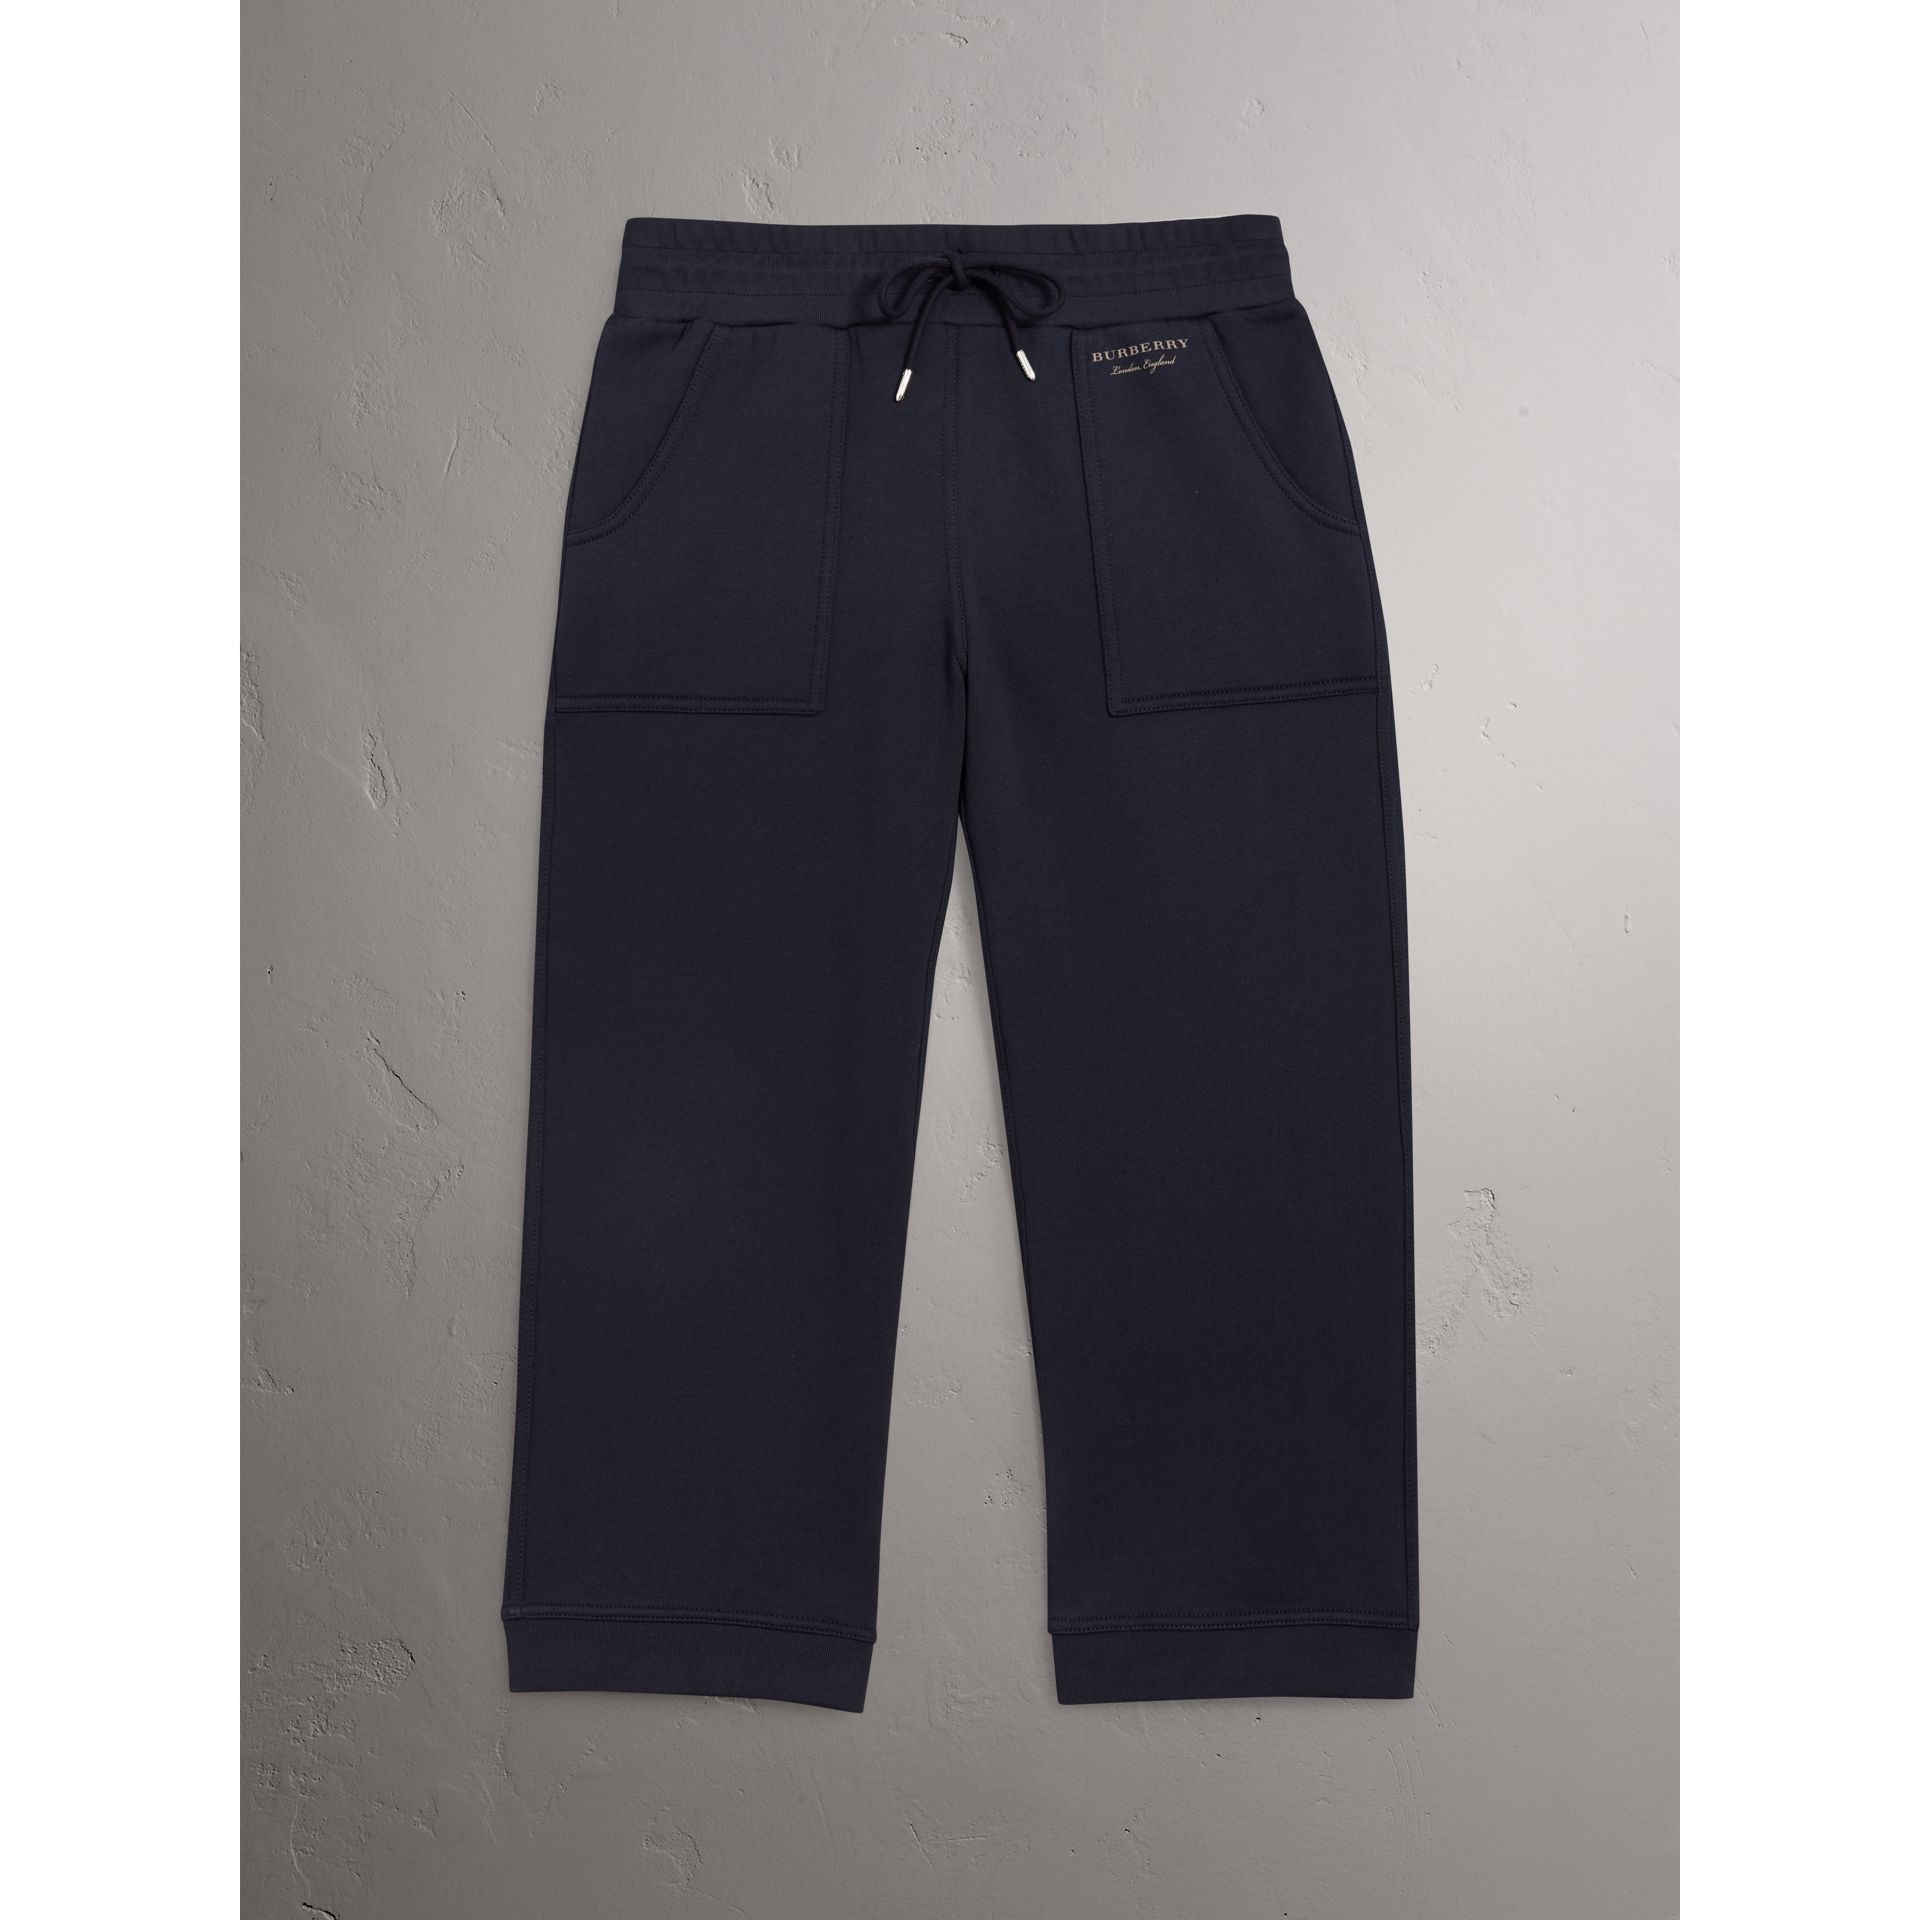 Pantalon de survêtement 7/8 en jersey (Marine) - Femme | Burberry - photo de la galerie 4